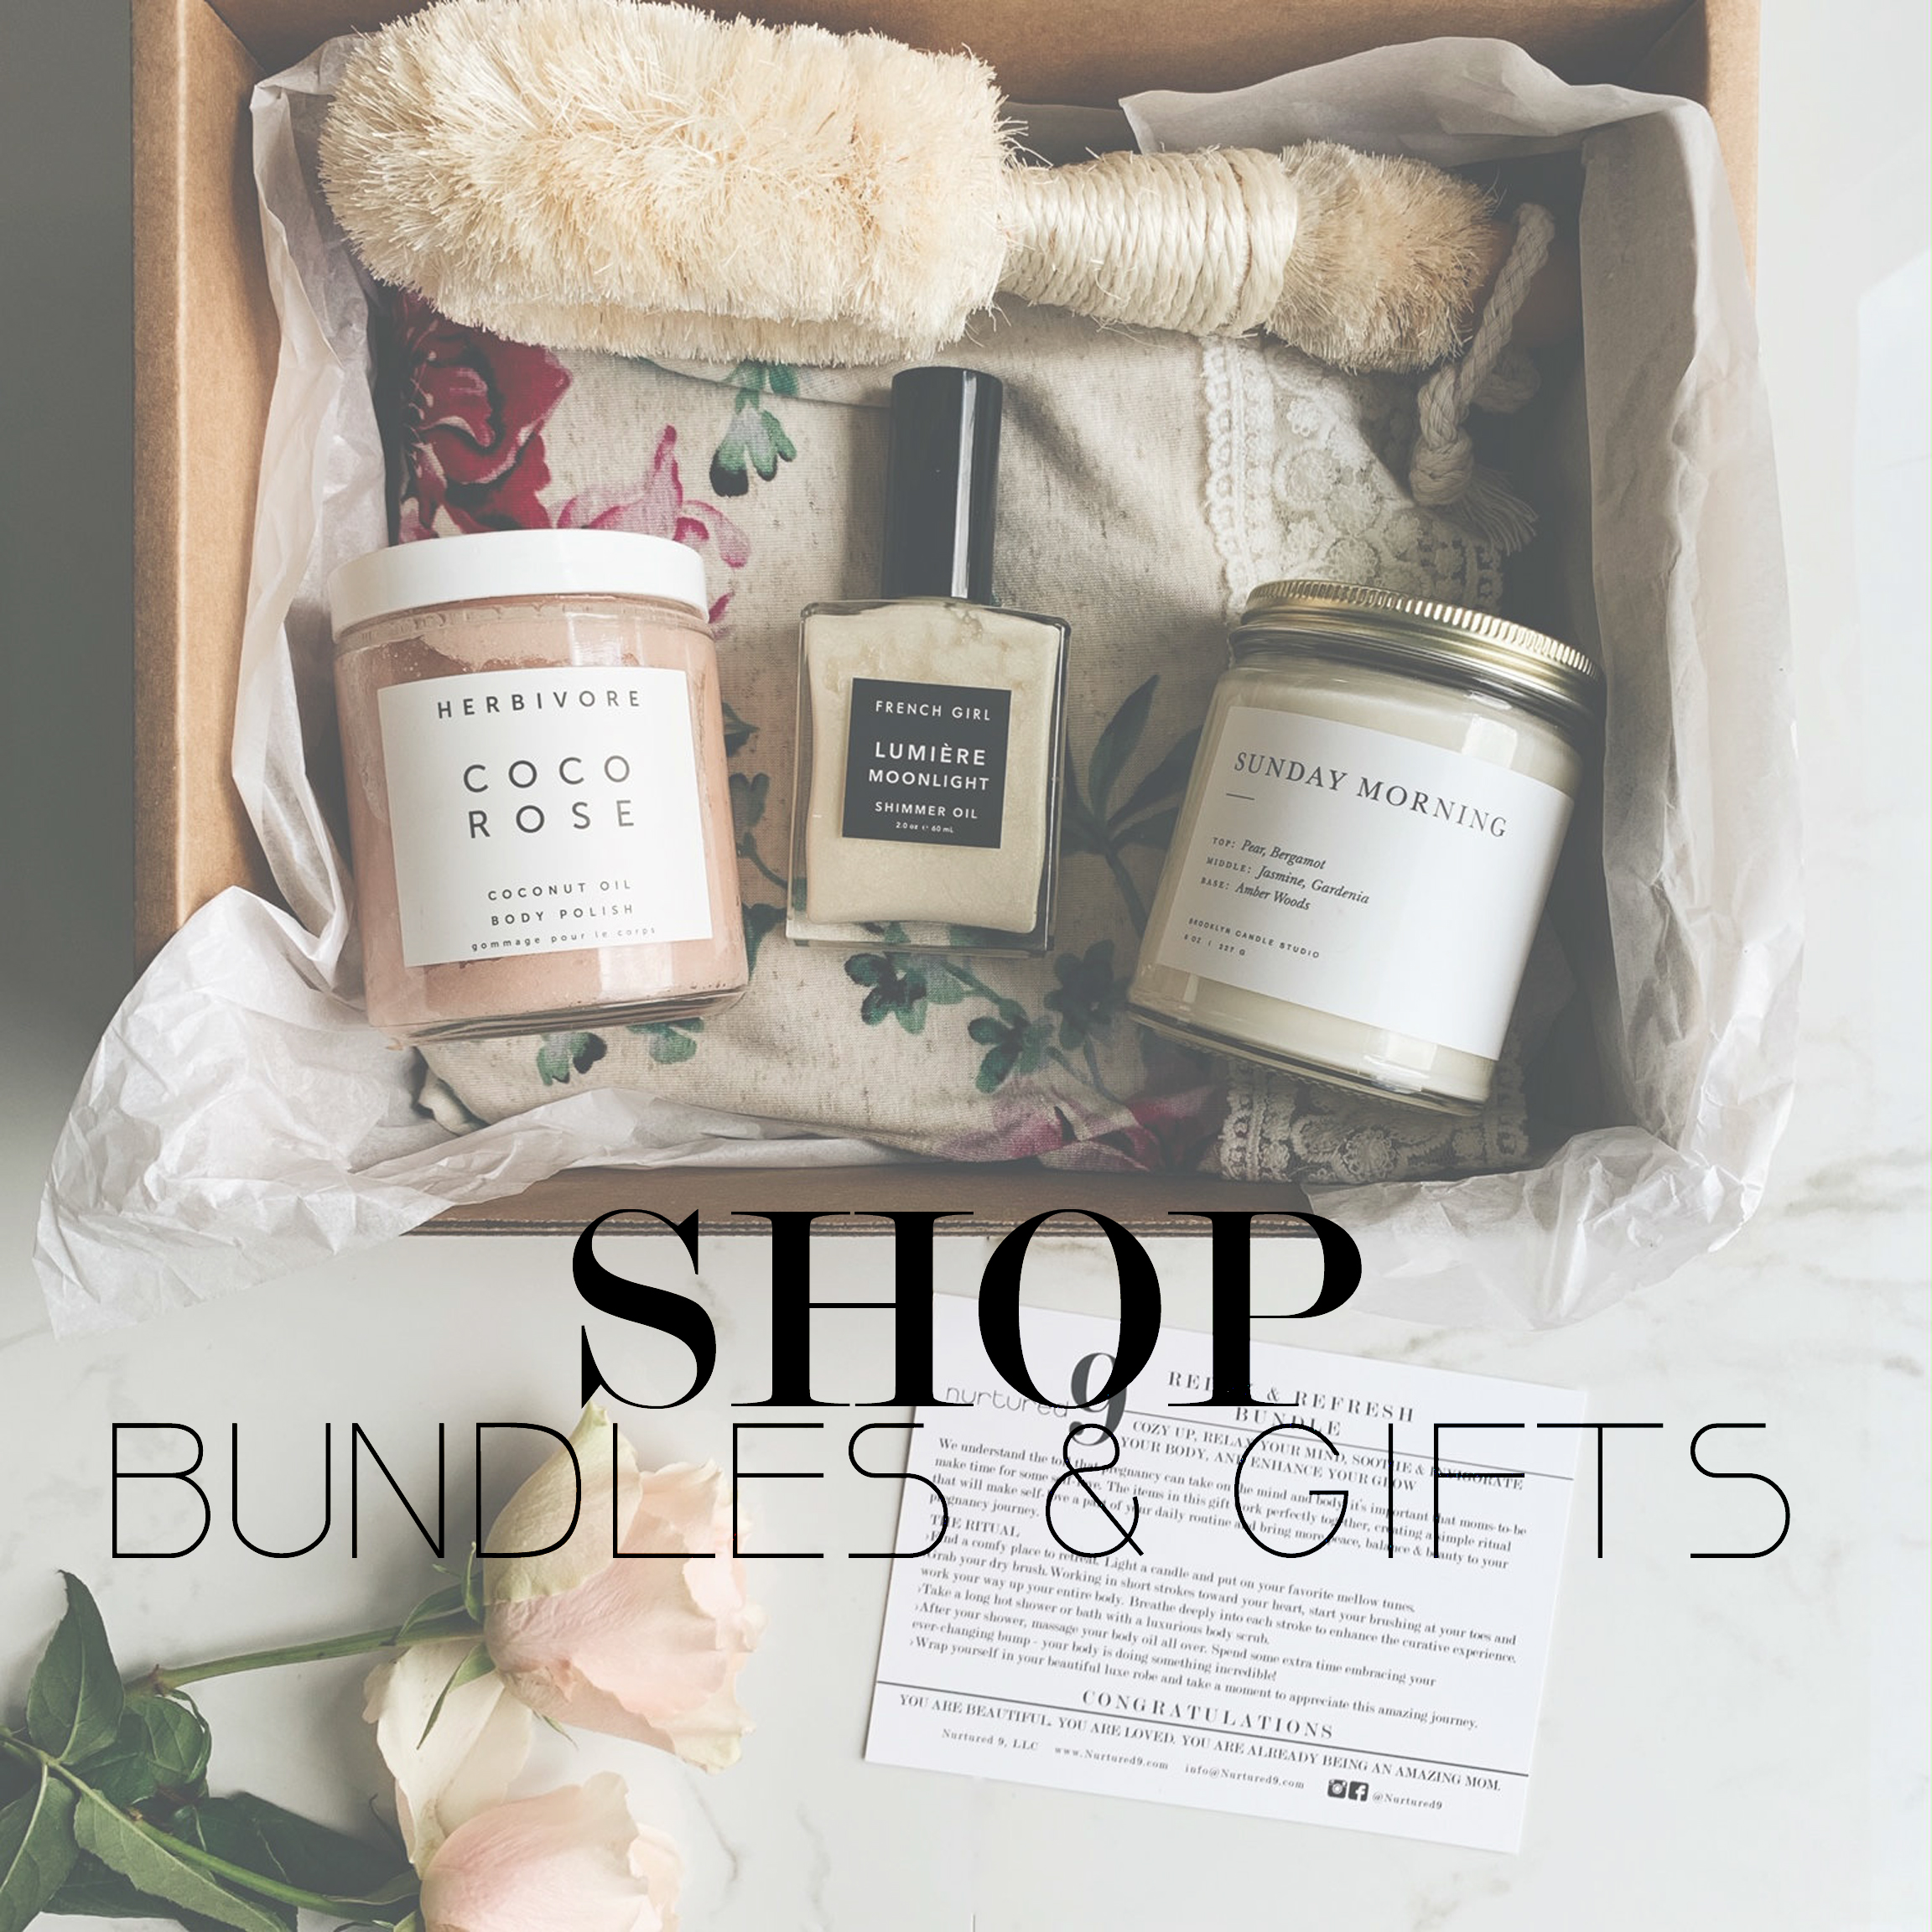 shop bundles and gifts.jpg